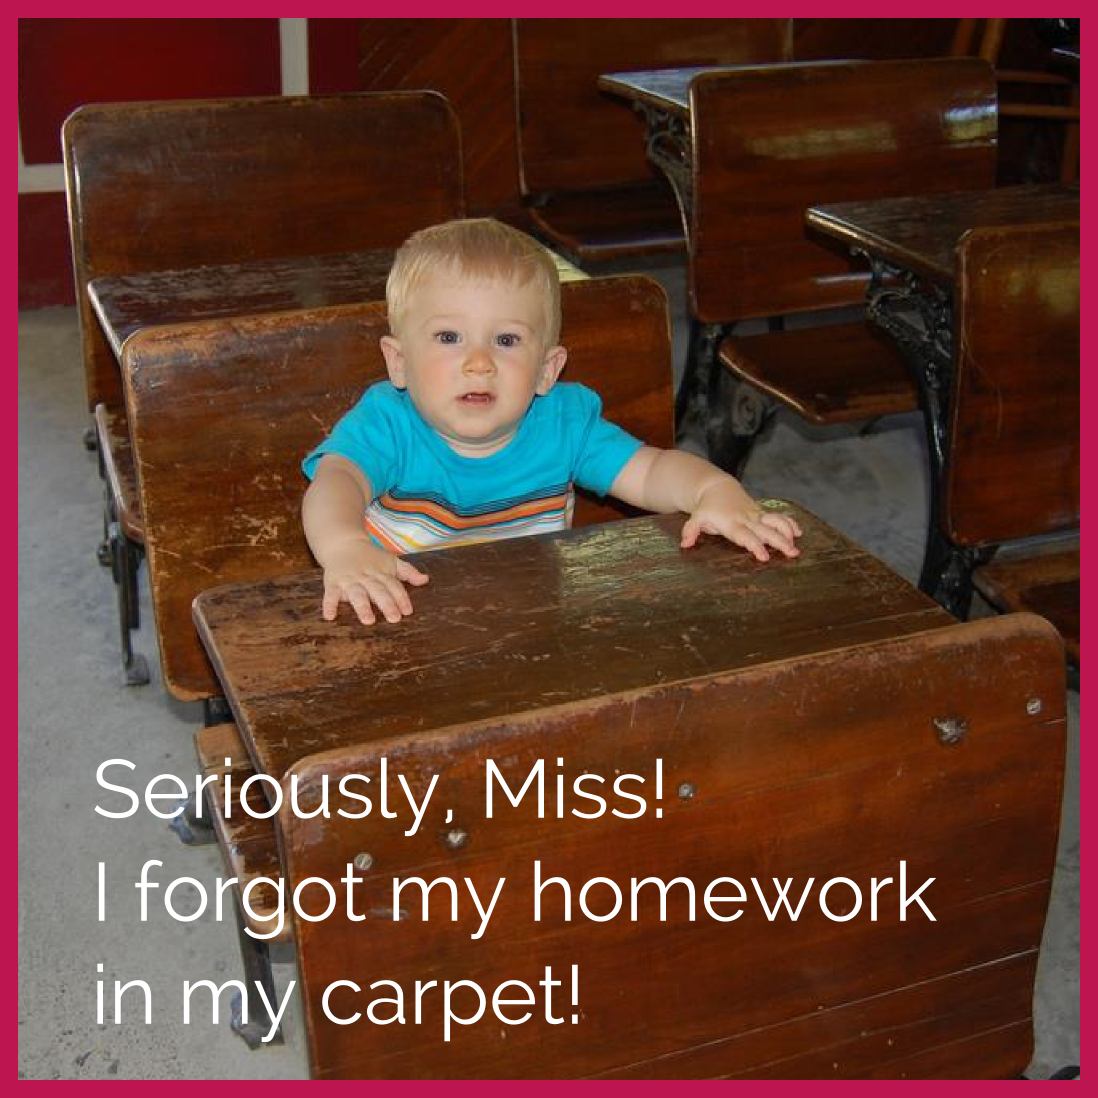 The kid says he left his homework in the carpet. What! In the carpet??? Although the Spanish word 'Carpeta' sounds like 'carpet', it actually means 'folder' in Spanish. So the kid actually forgot his homework in the folder!